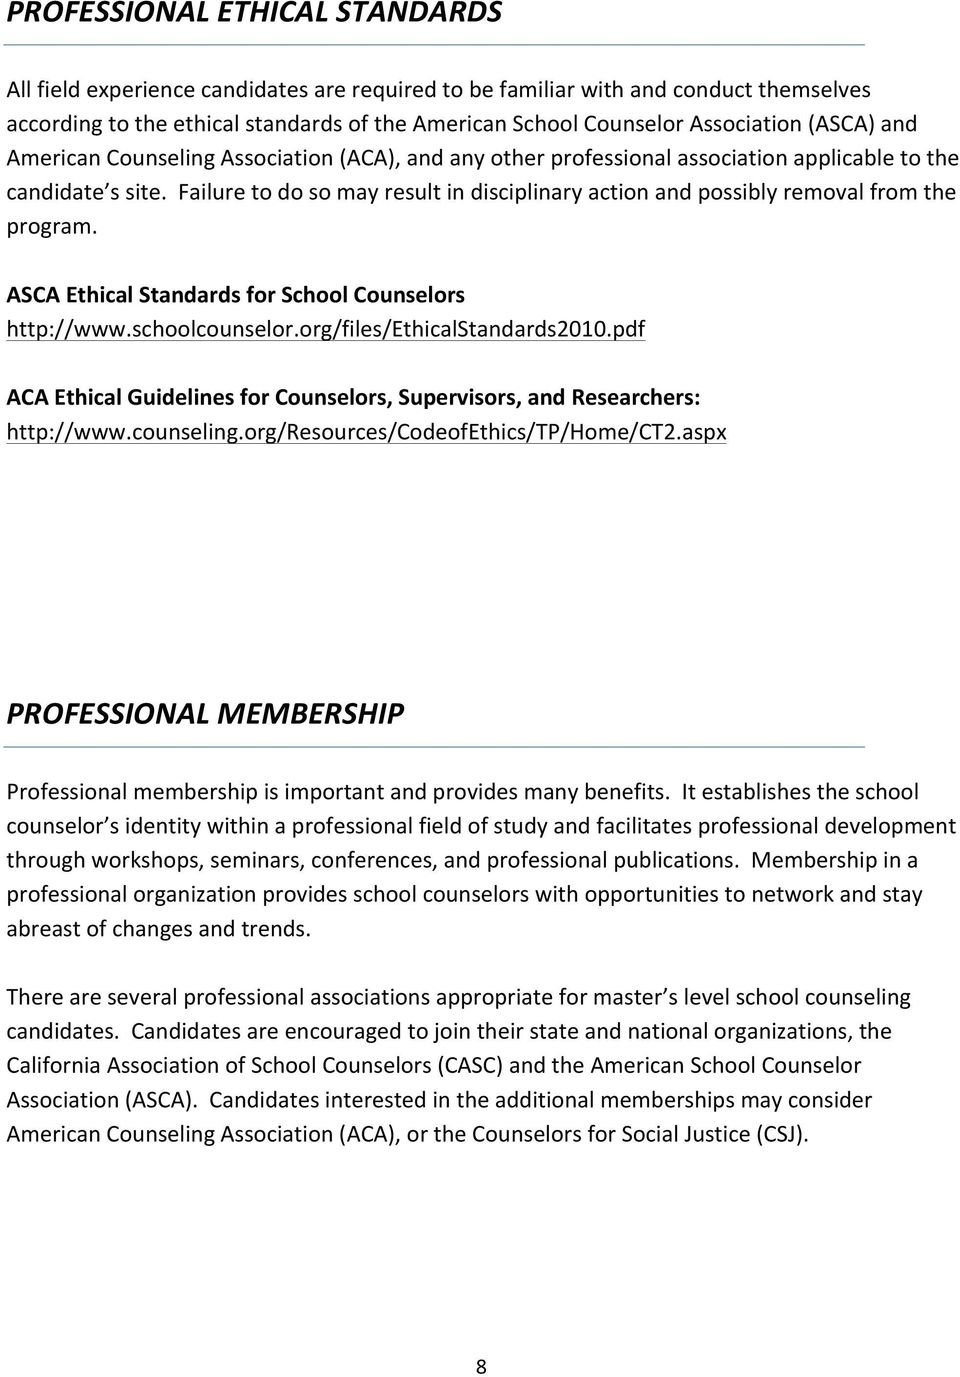 Failure to do so may result in disciplinary action and possibly removal from the program. ASCA Ethical Standards for School Counselors http://www.schoolcounselor.org/files/ethicalstandards2010.